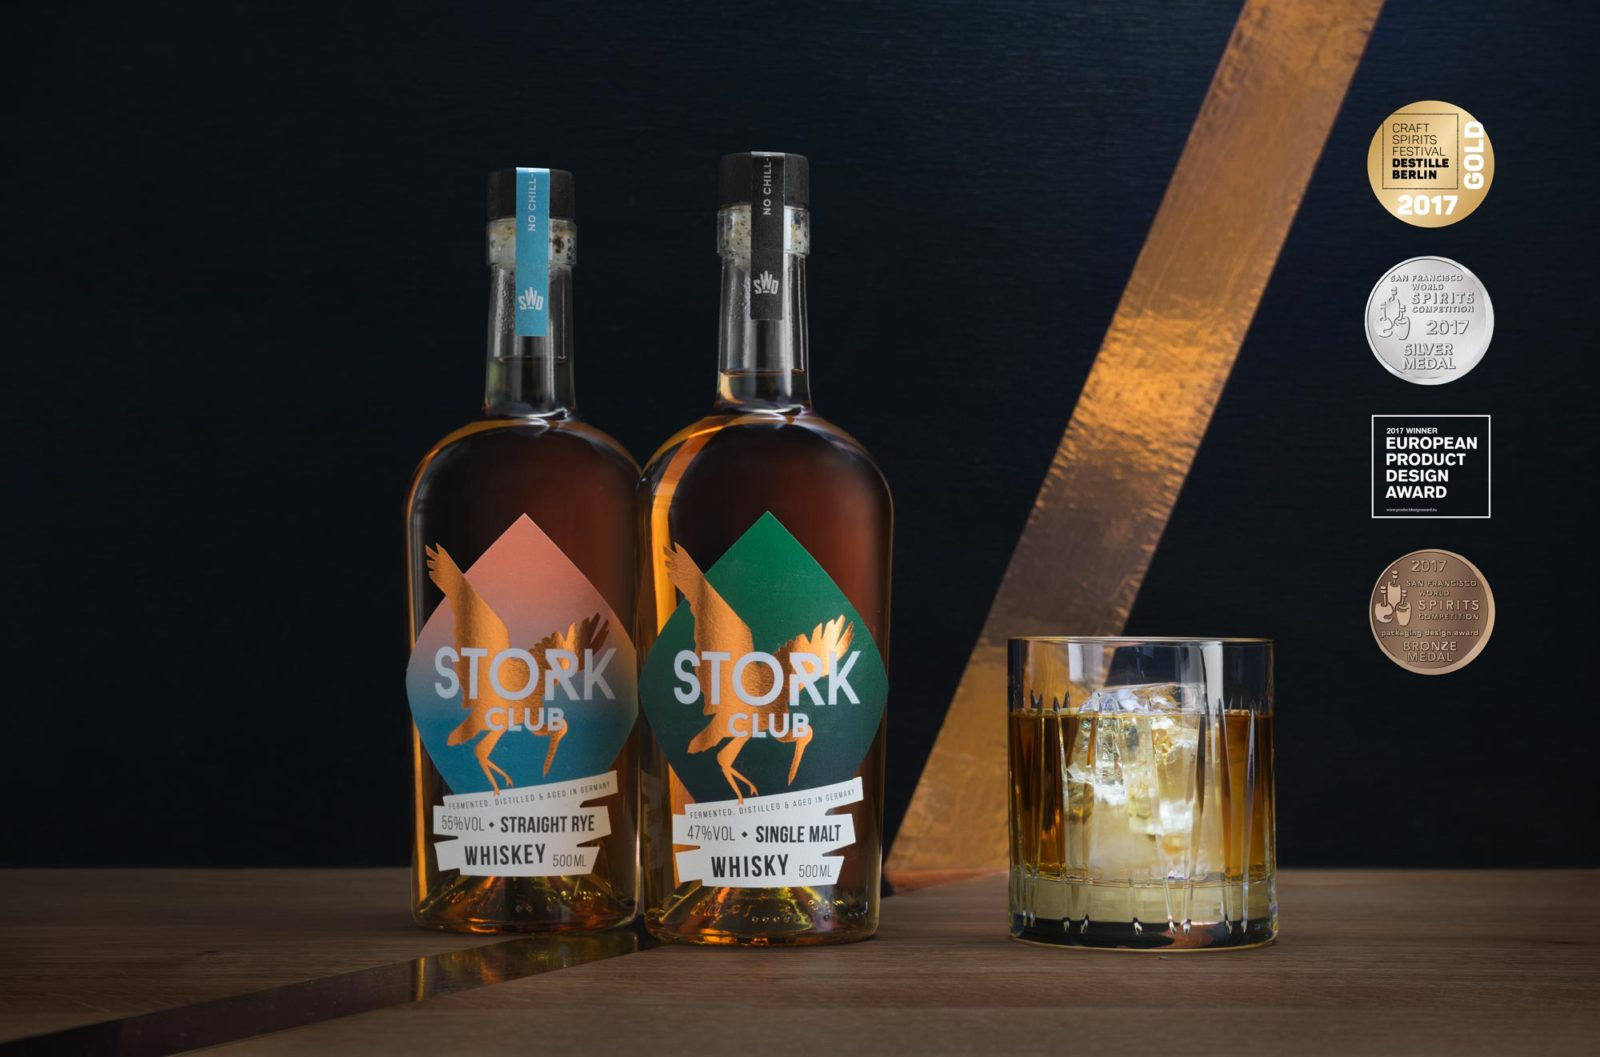 Editienne Grafikdesign - Kommunikationsdesign Berlin- Stork Club Whisky Packaging Design 17